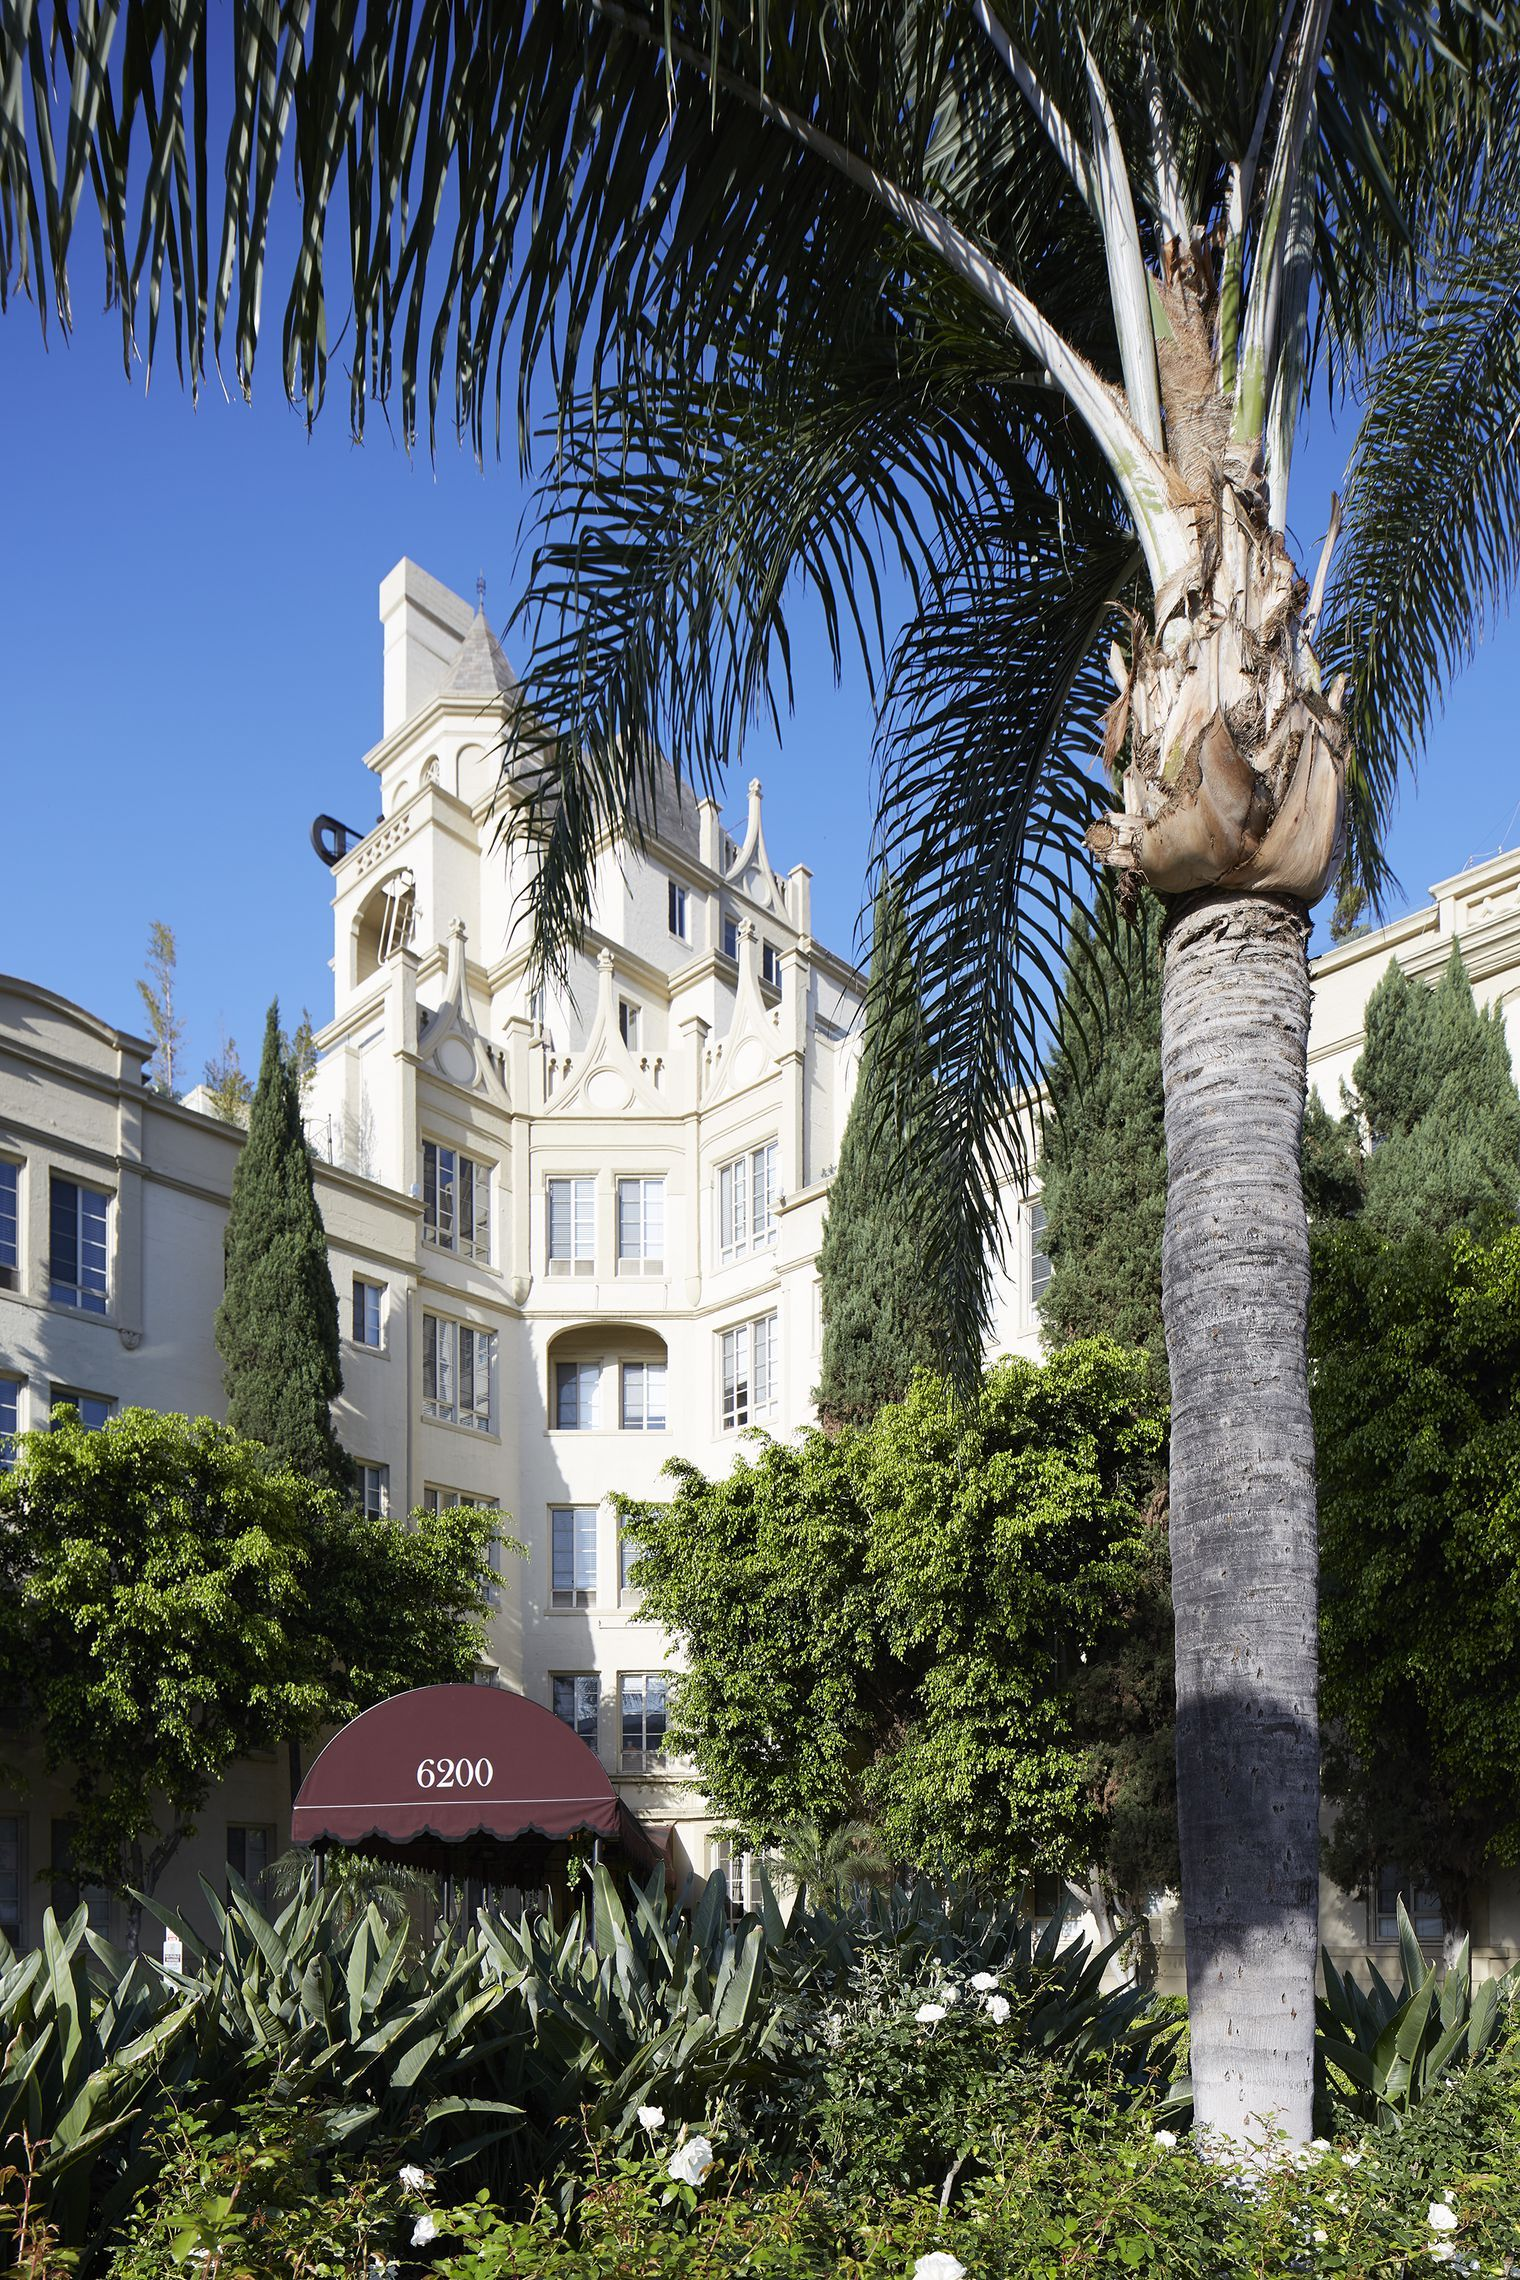 13 glamorous apartments from Hollywood's Golden Age